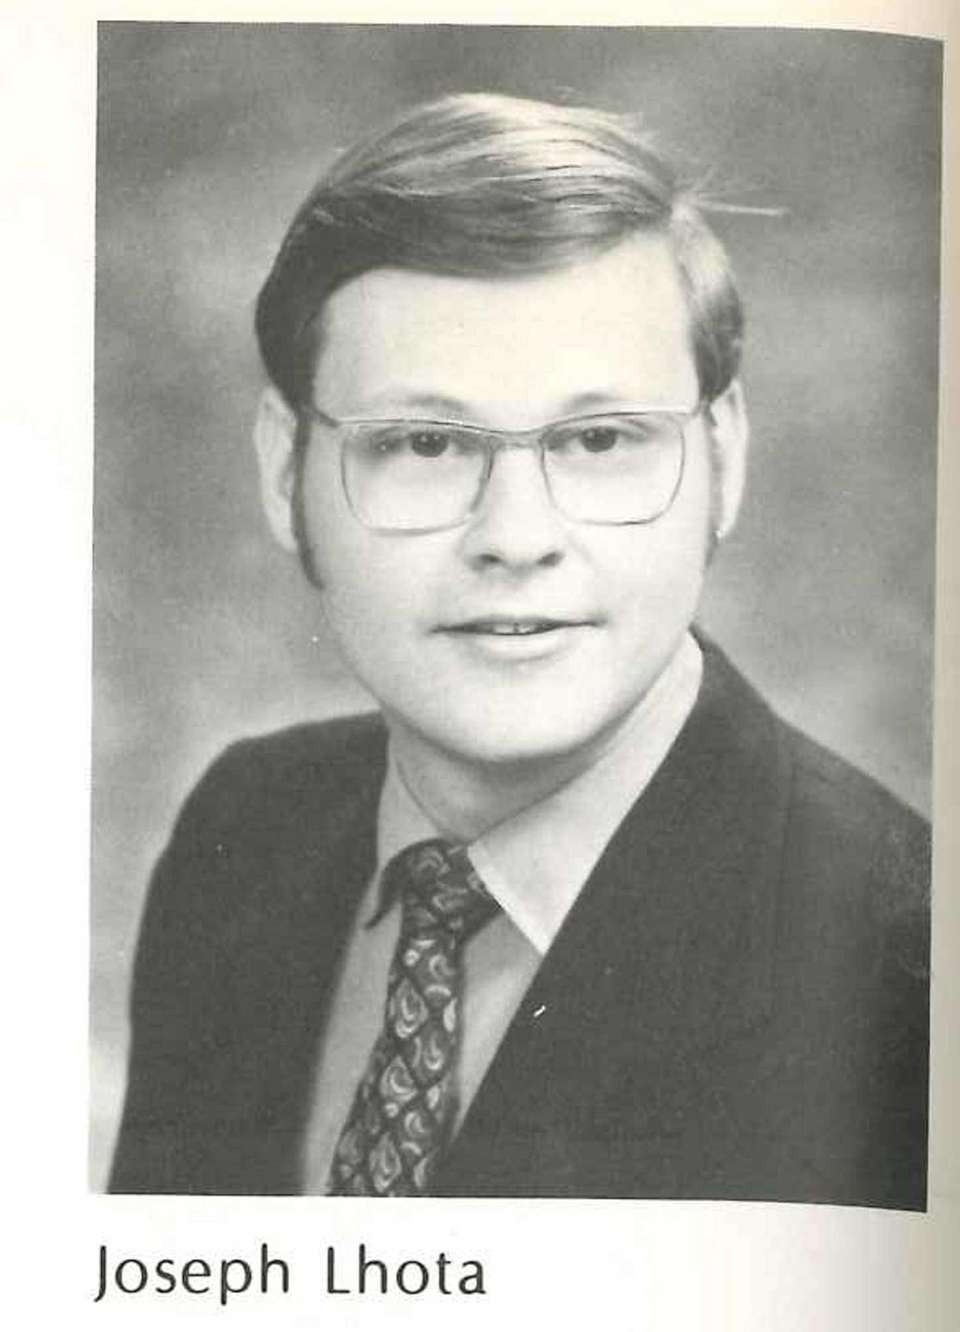 Joseph Lhota from his days as a student